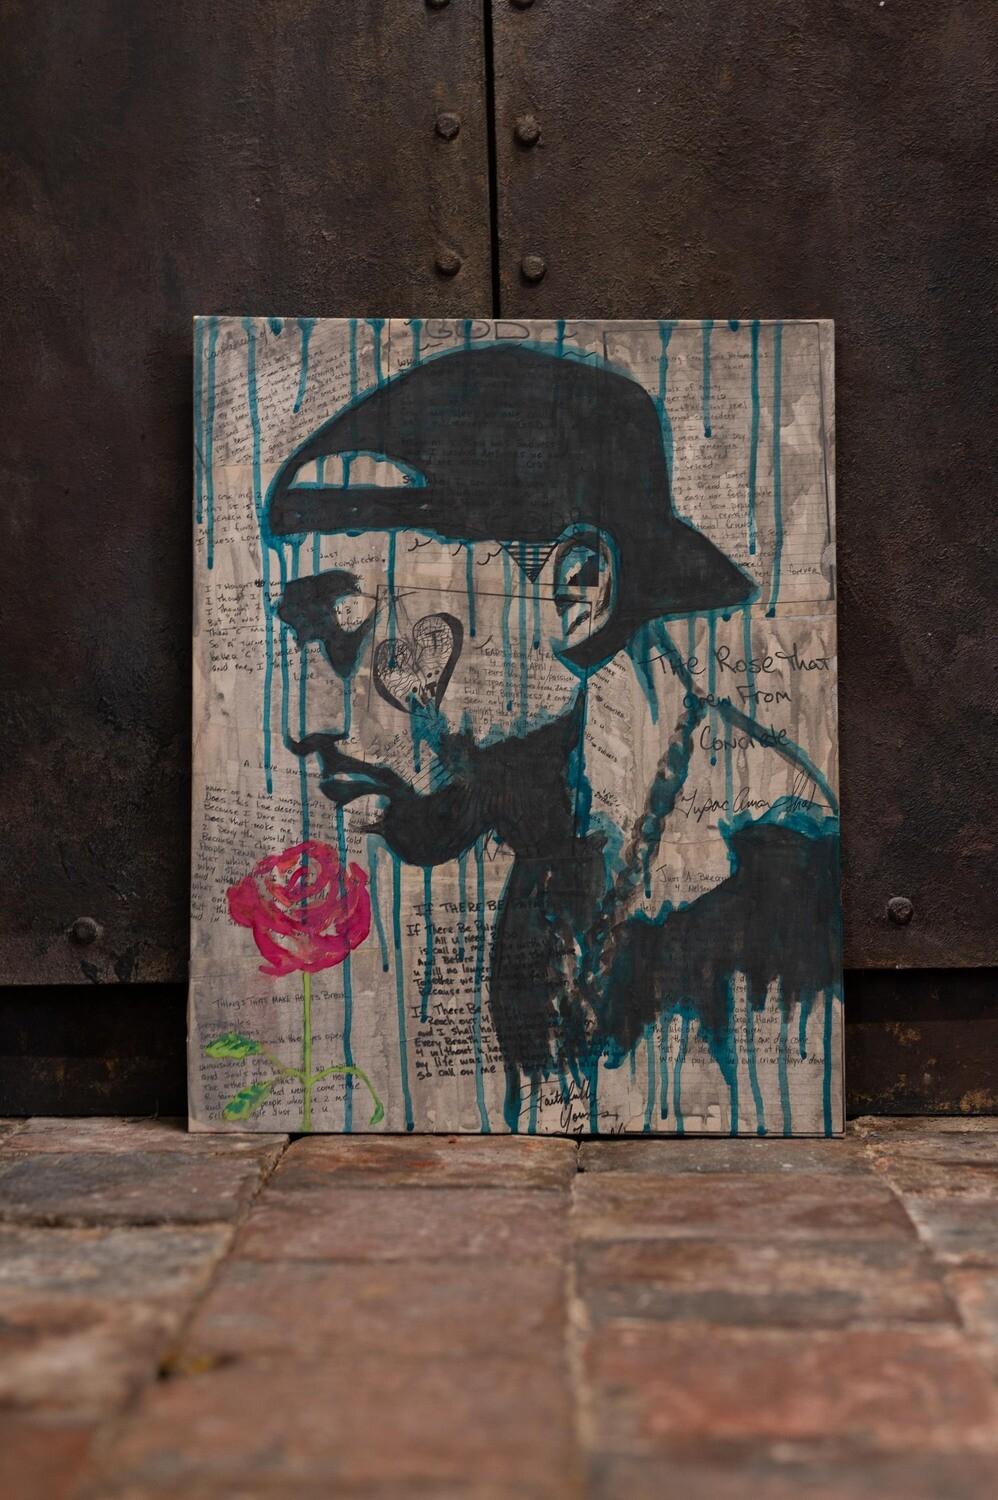 2Pac on Poetry by Rob Holmes